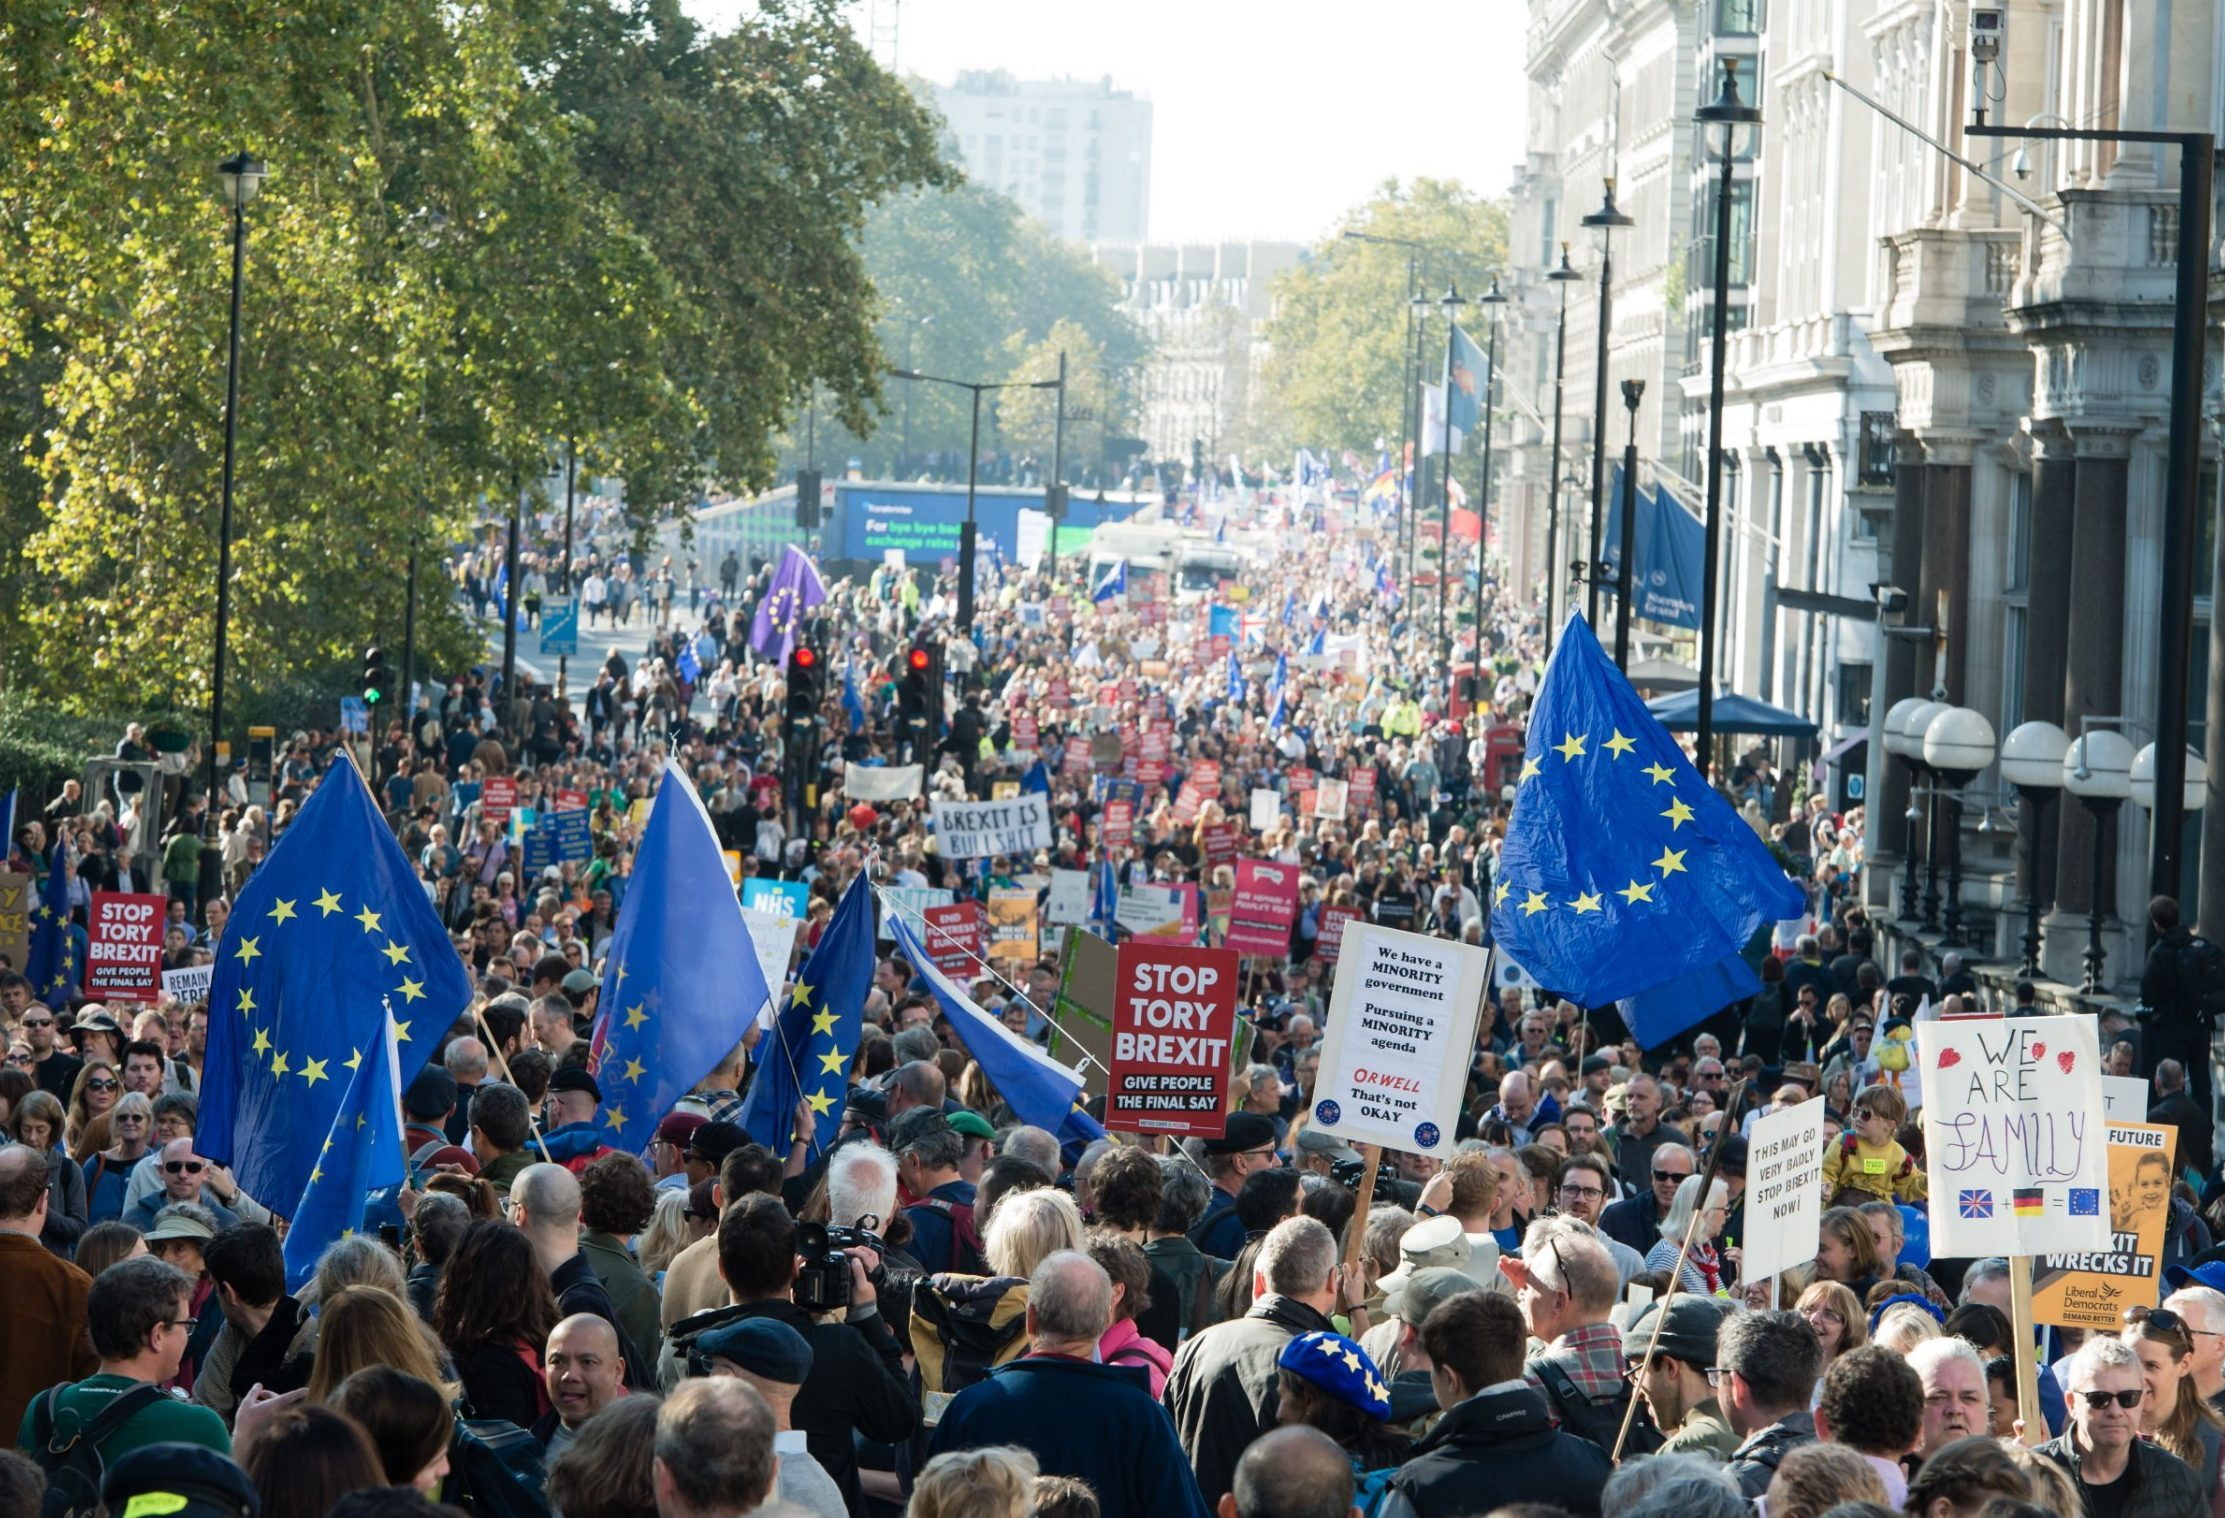 Mandatory Credit: Photo by Richard Isaac/REX (9938833bv) Around 100,000 demonstrators march through London during a People's Vote anti-brexit demonstration waving EU flags, banners and placards Anti-Brexit People's Vote March for the Future in London, UK - 20 Oct 2018